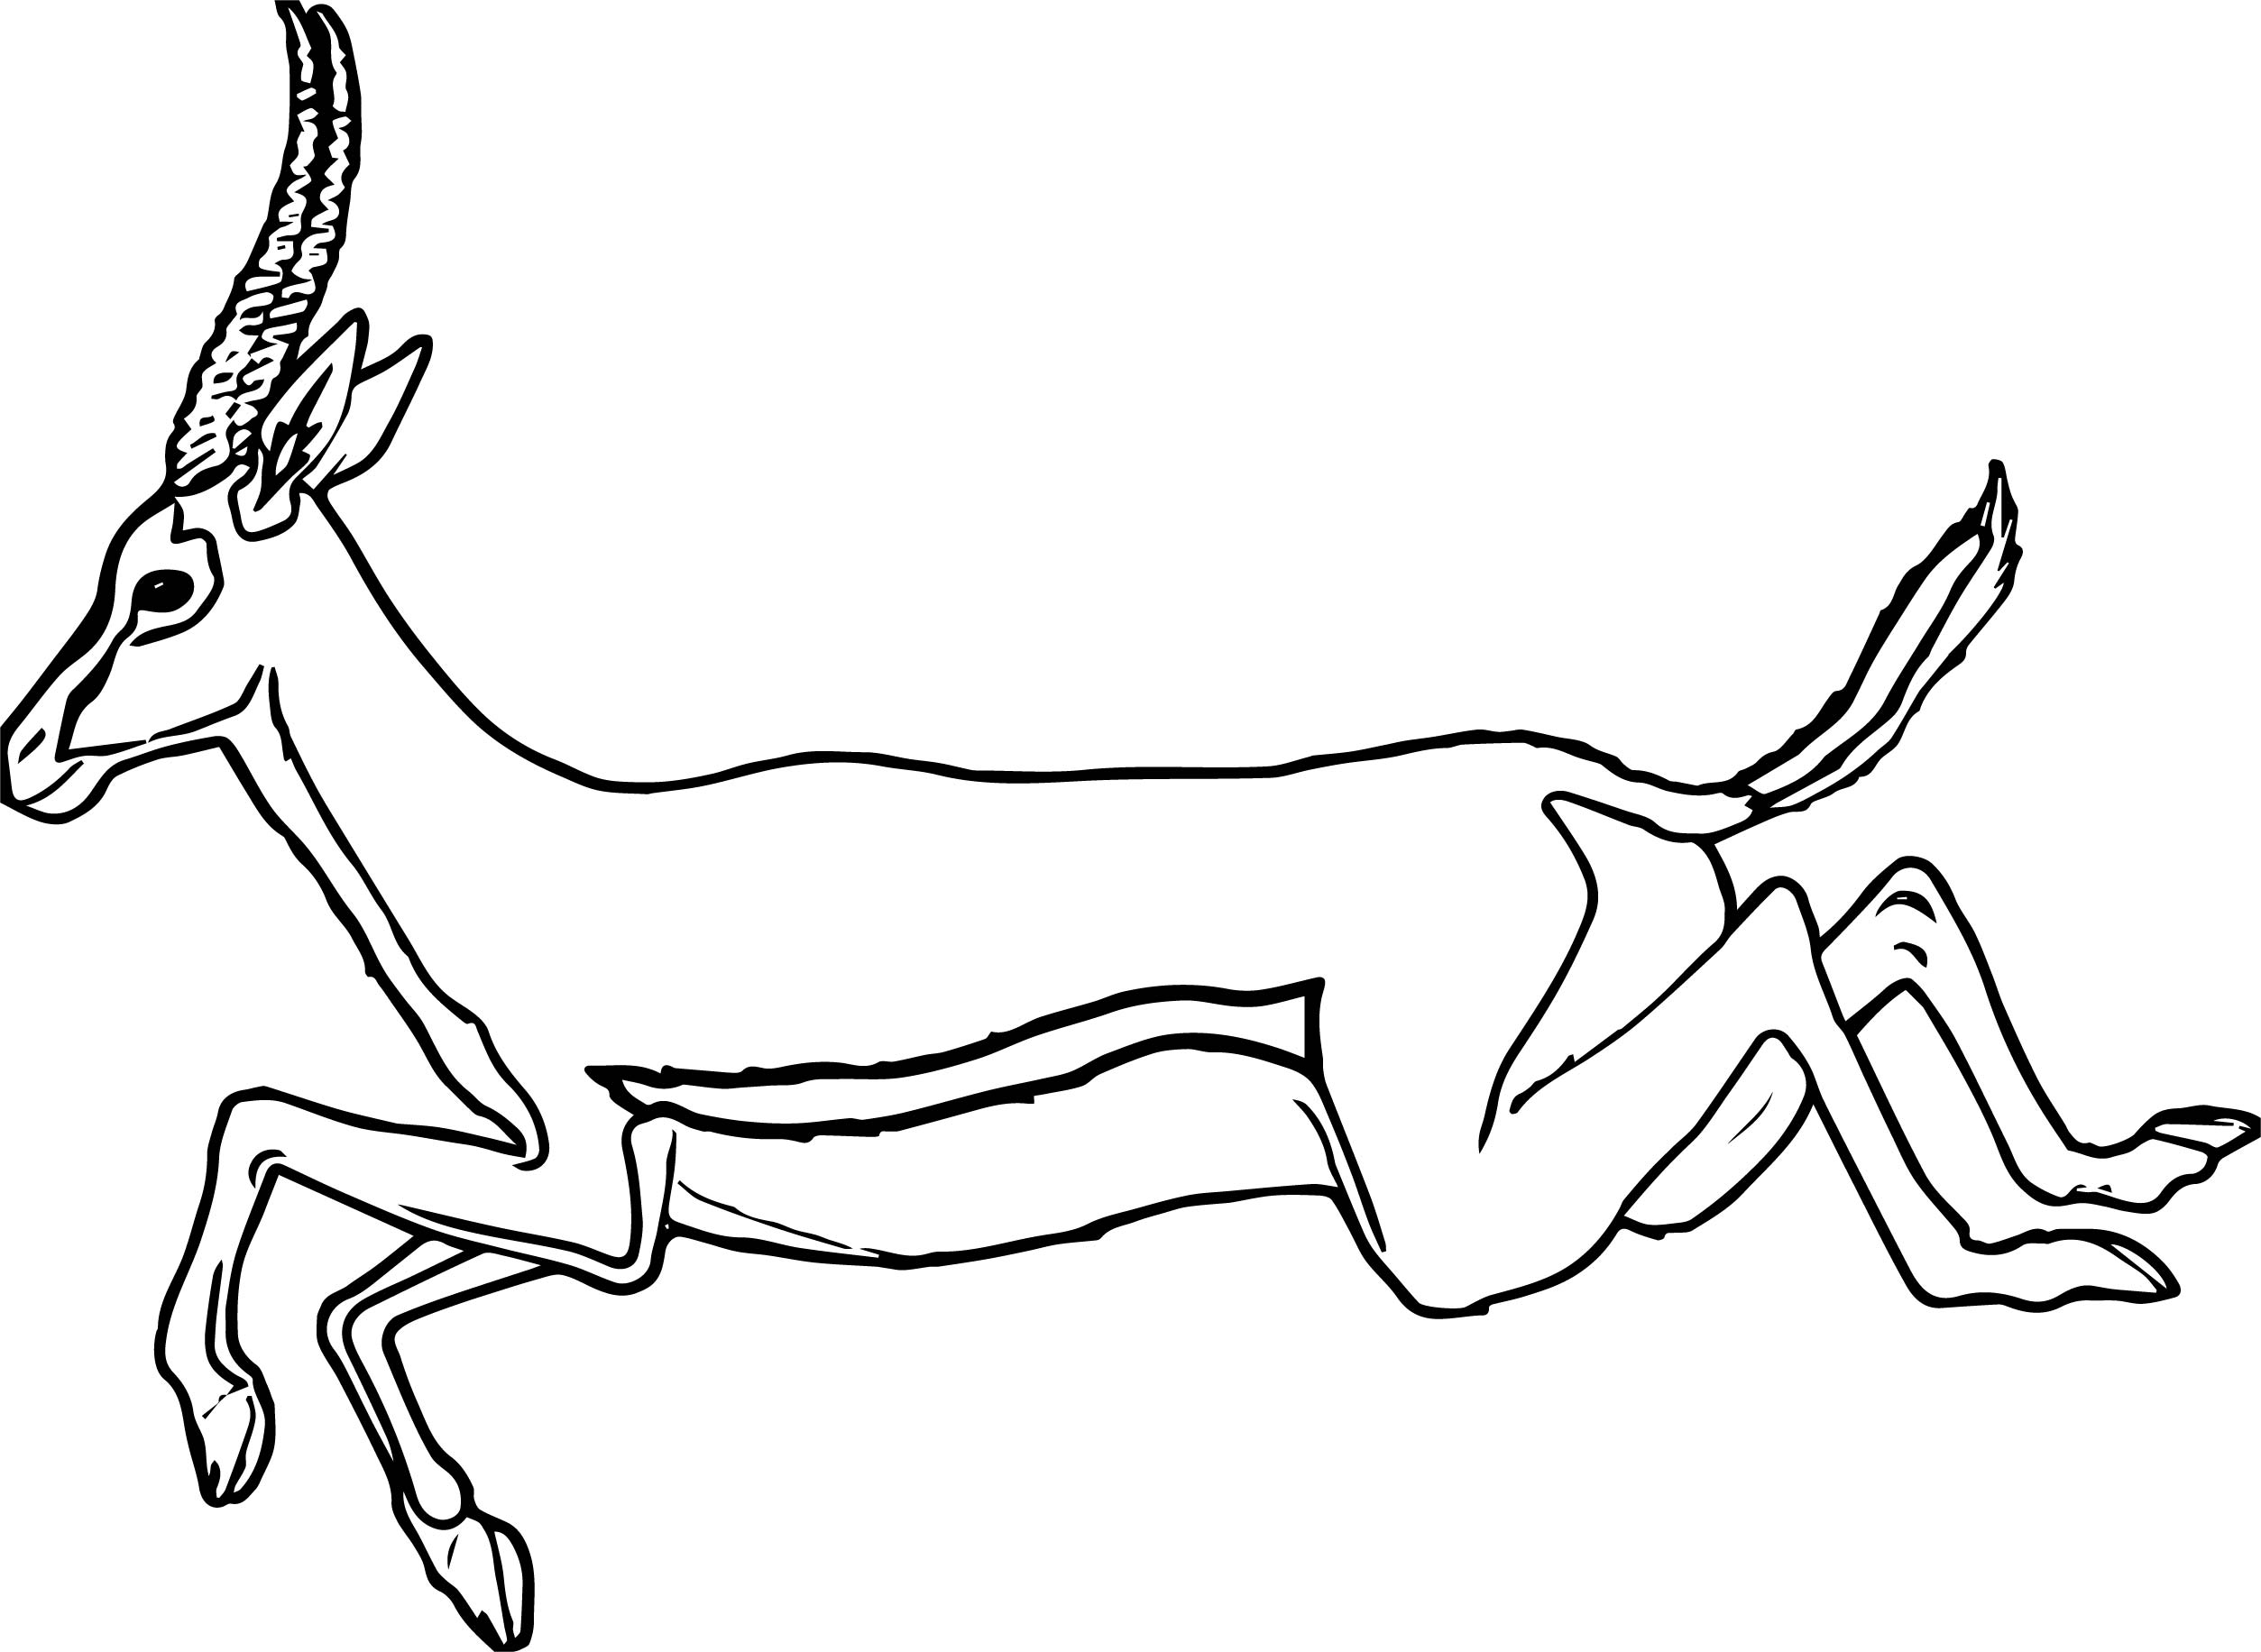 Coloring Pages Of North American Animals : North american animals coloring pages best free